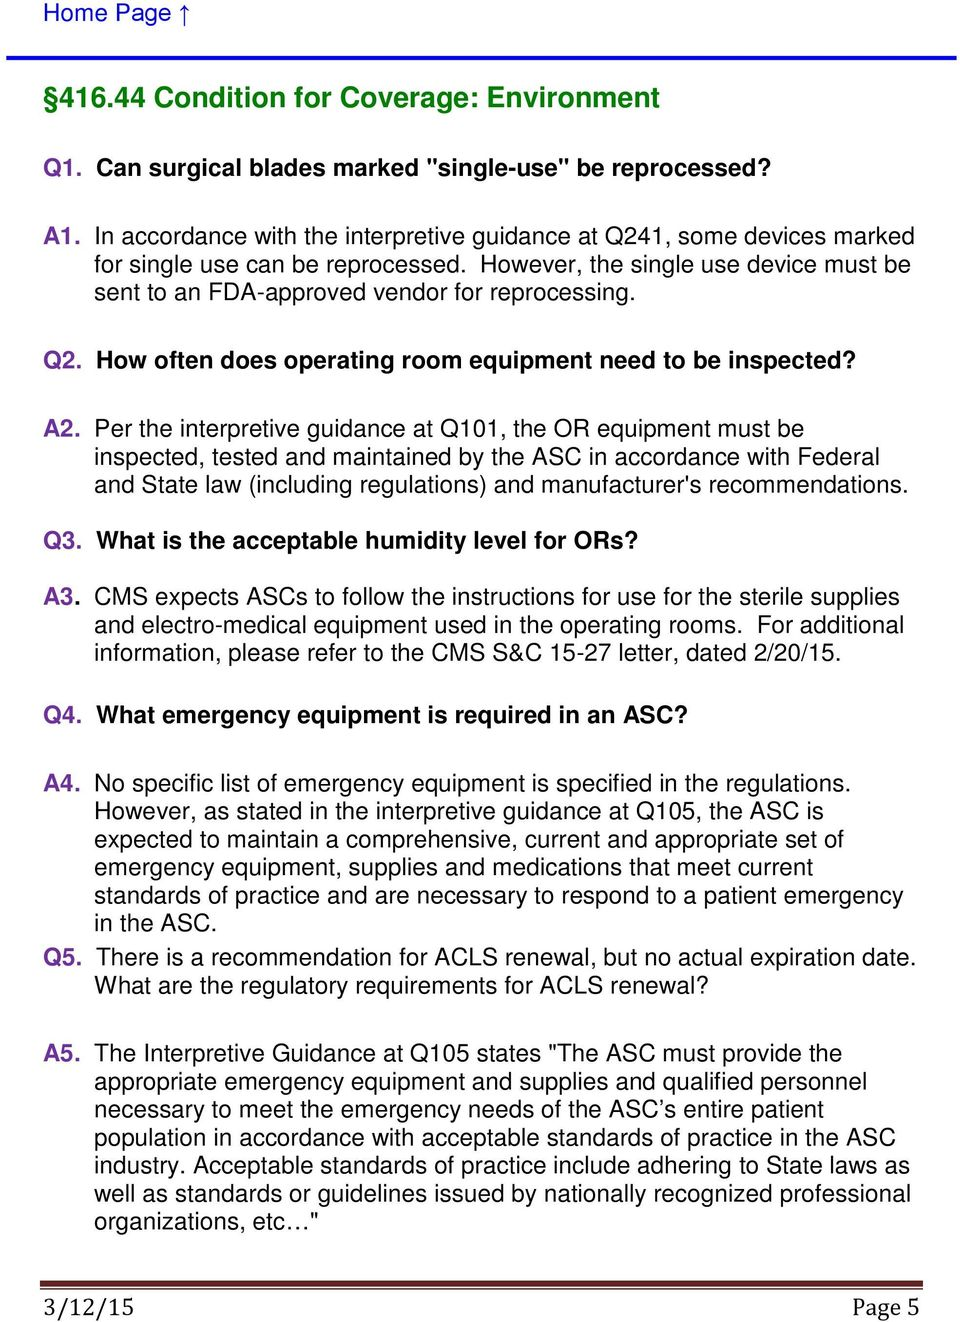 A2. Per the interpretive guidance at Q101, the OR equipment must be inspected, tested and maintained by the ASC in accordance with Federal and State law (including regulations) and manufacturer's